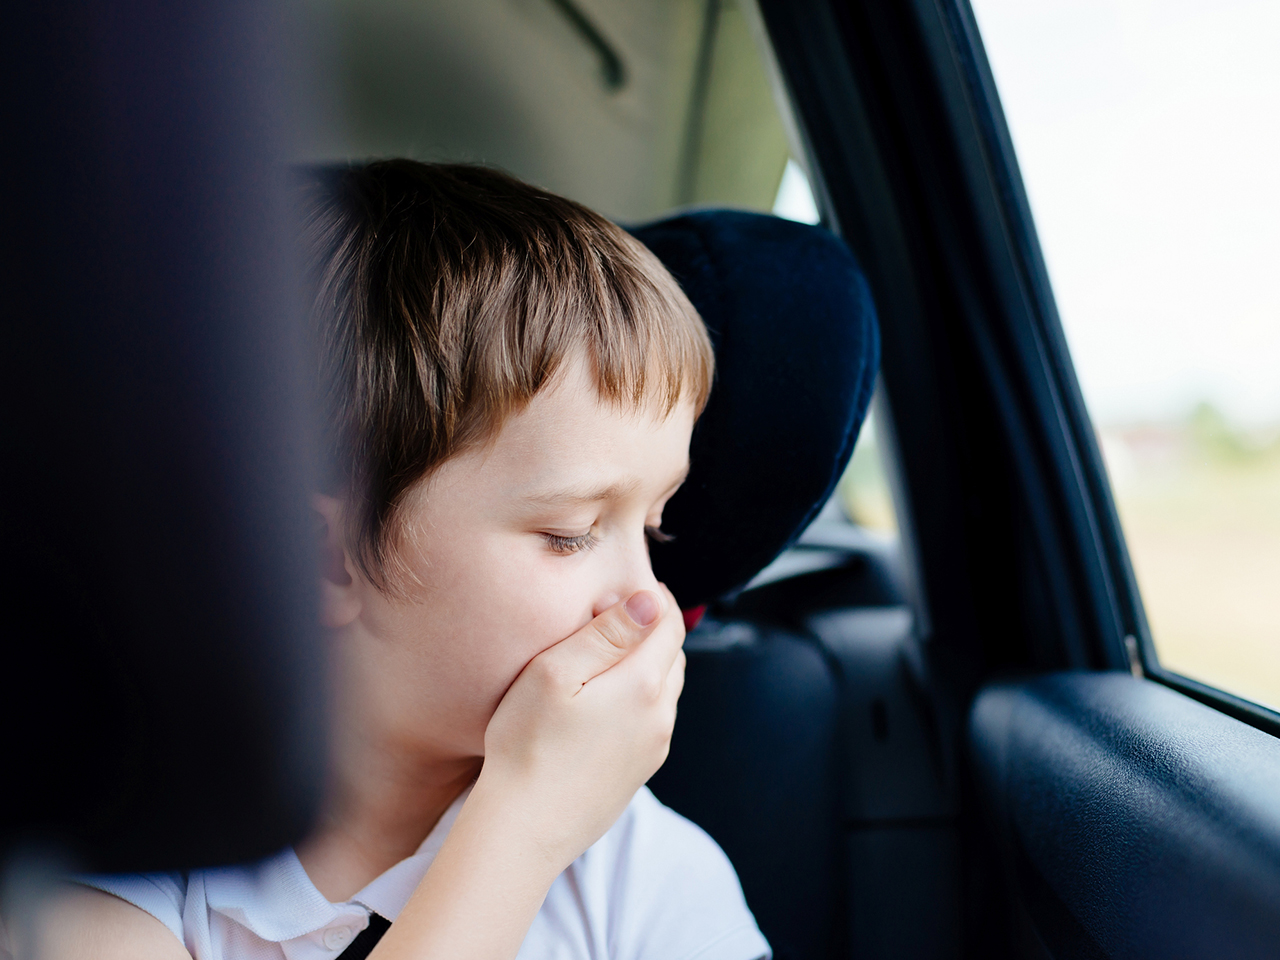 All about motion sickness symptoms in kids and how to prevent them